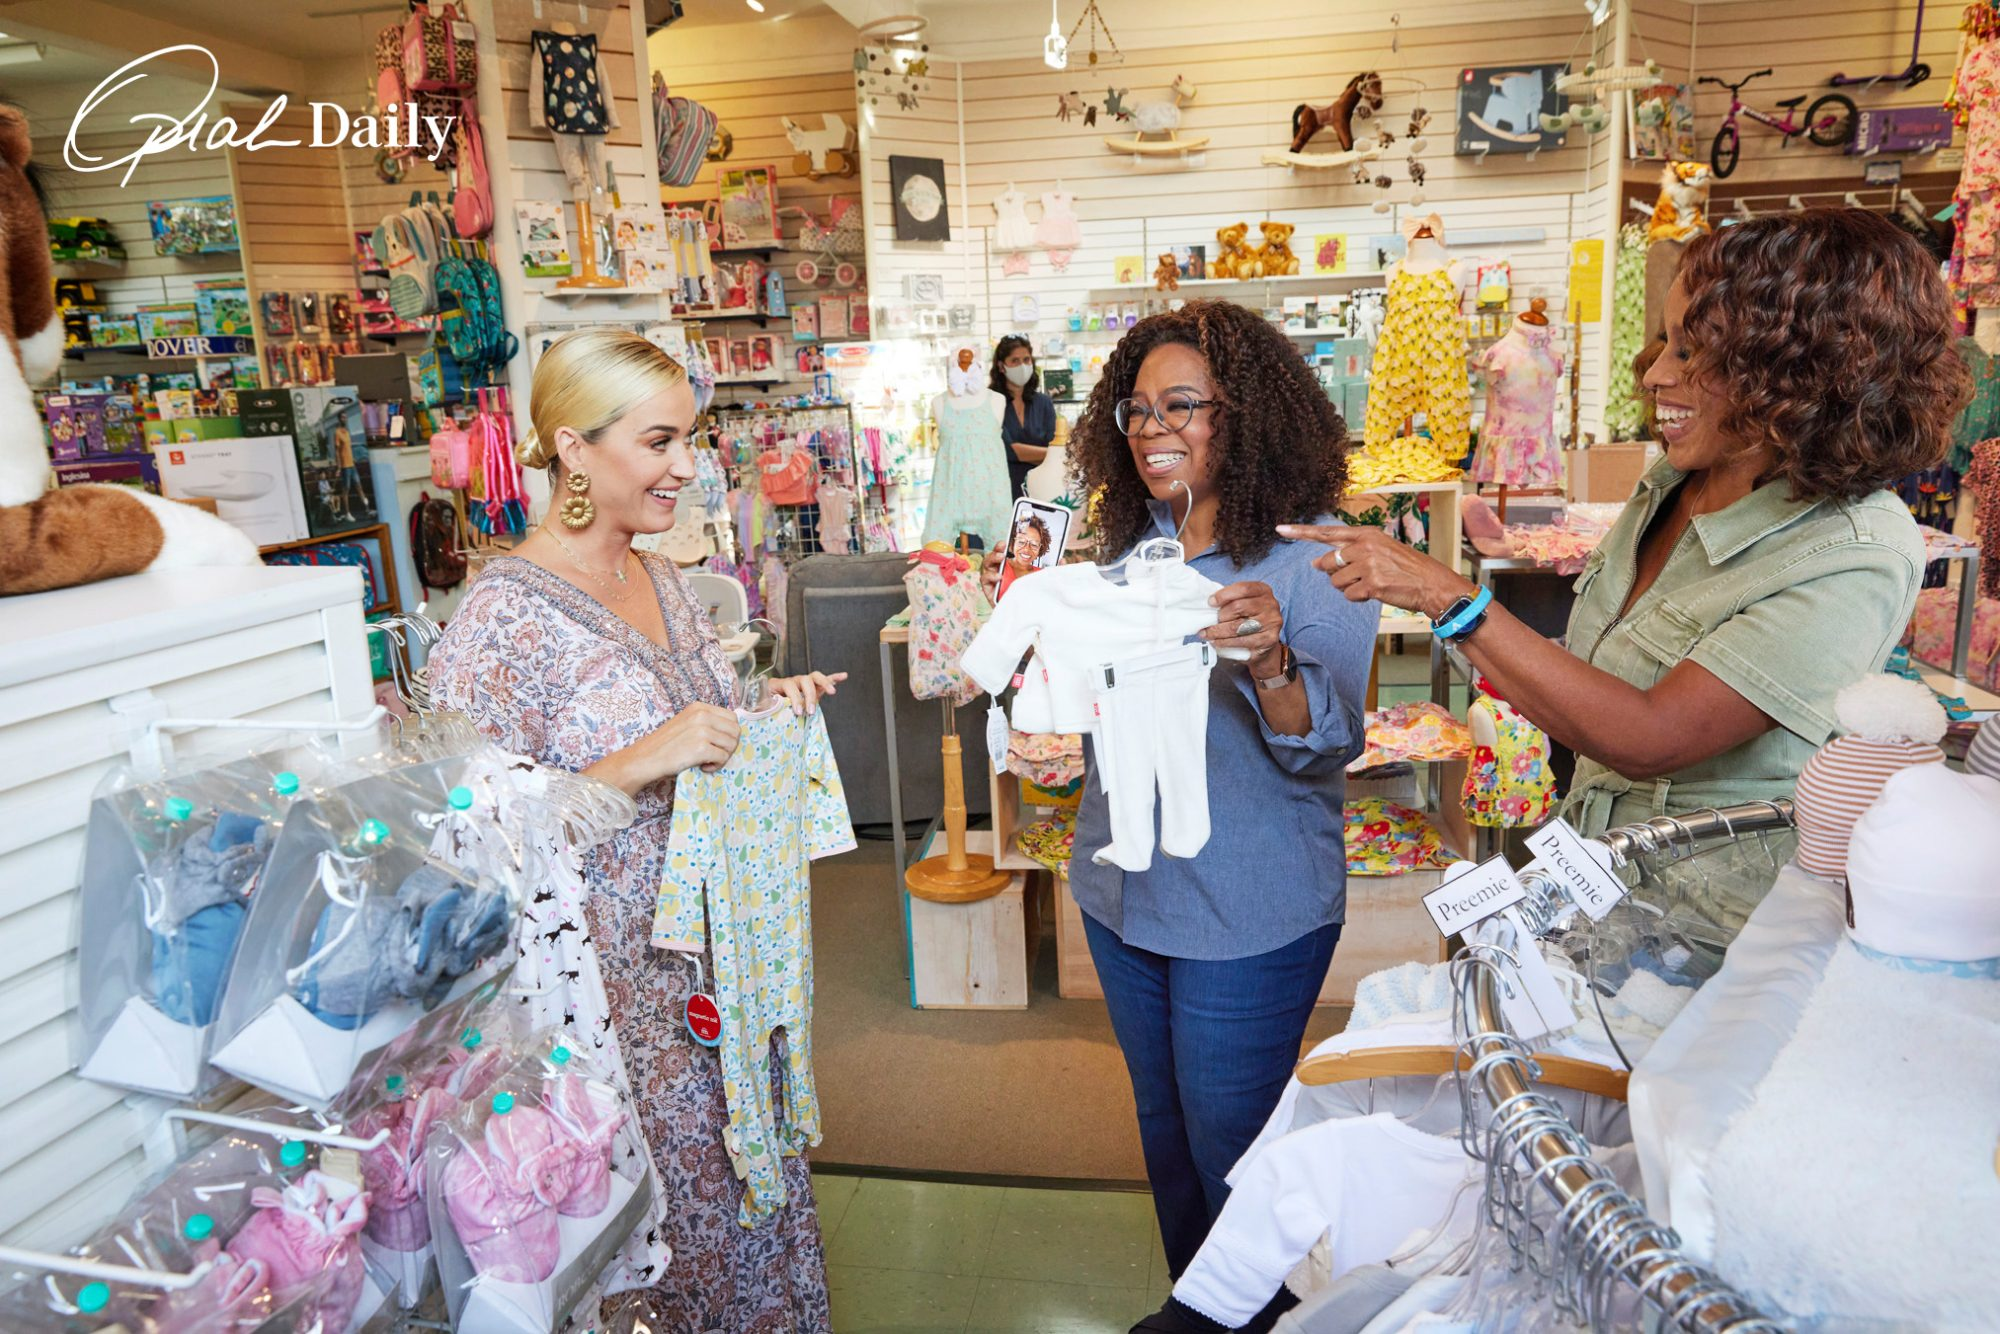 Katy Perry Shops with Oprah and Gayle for baby products